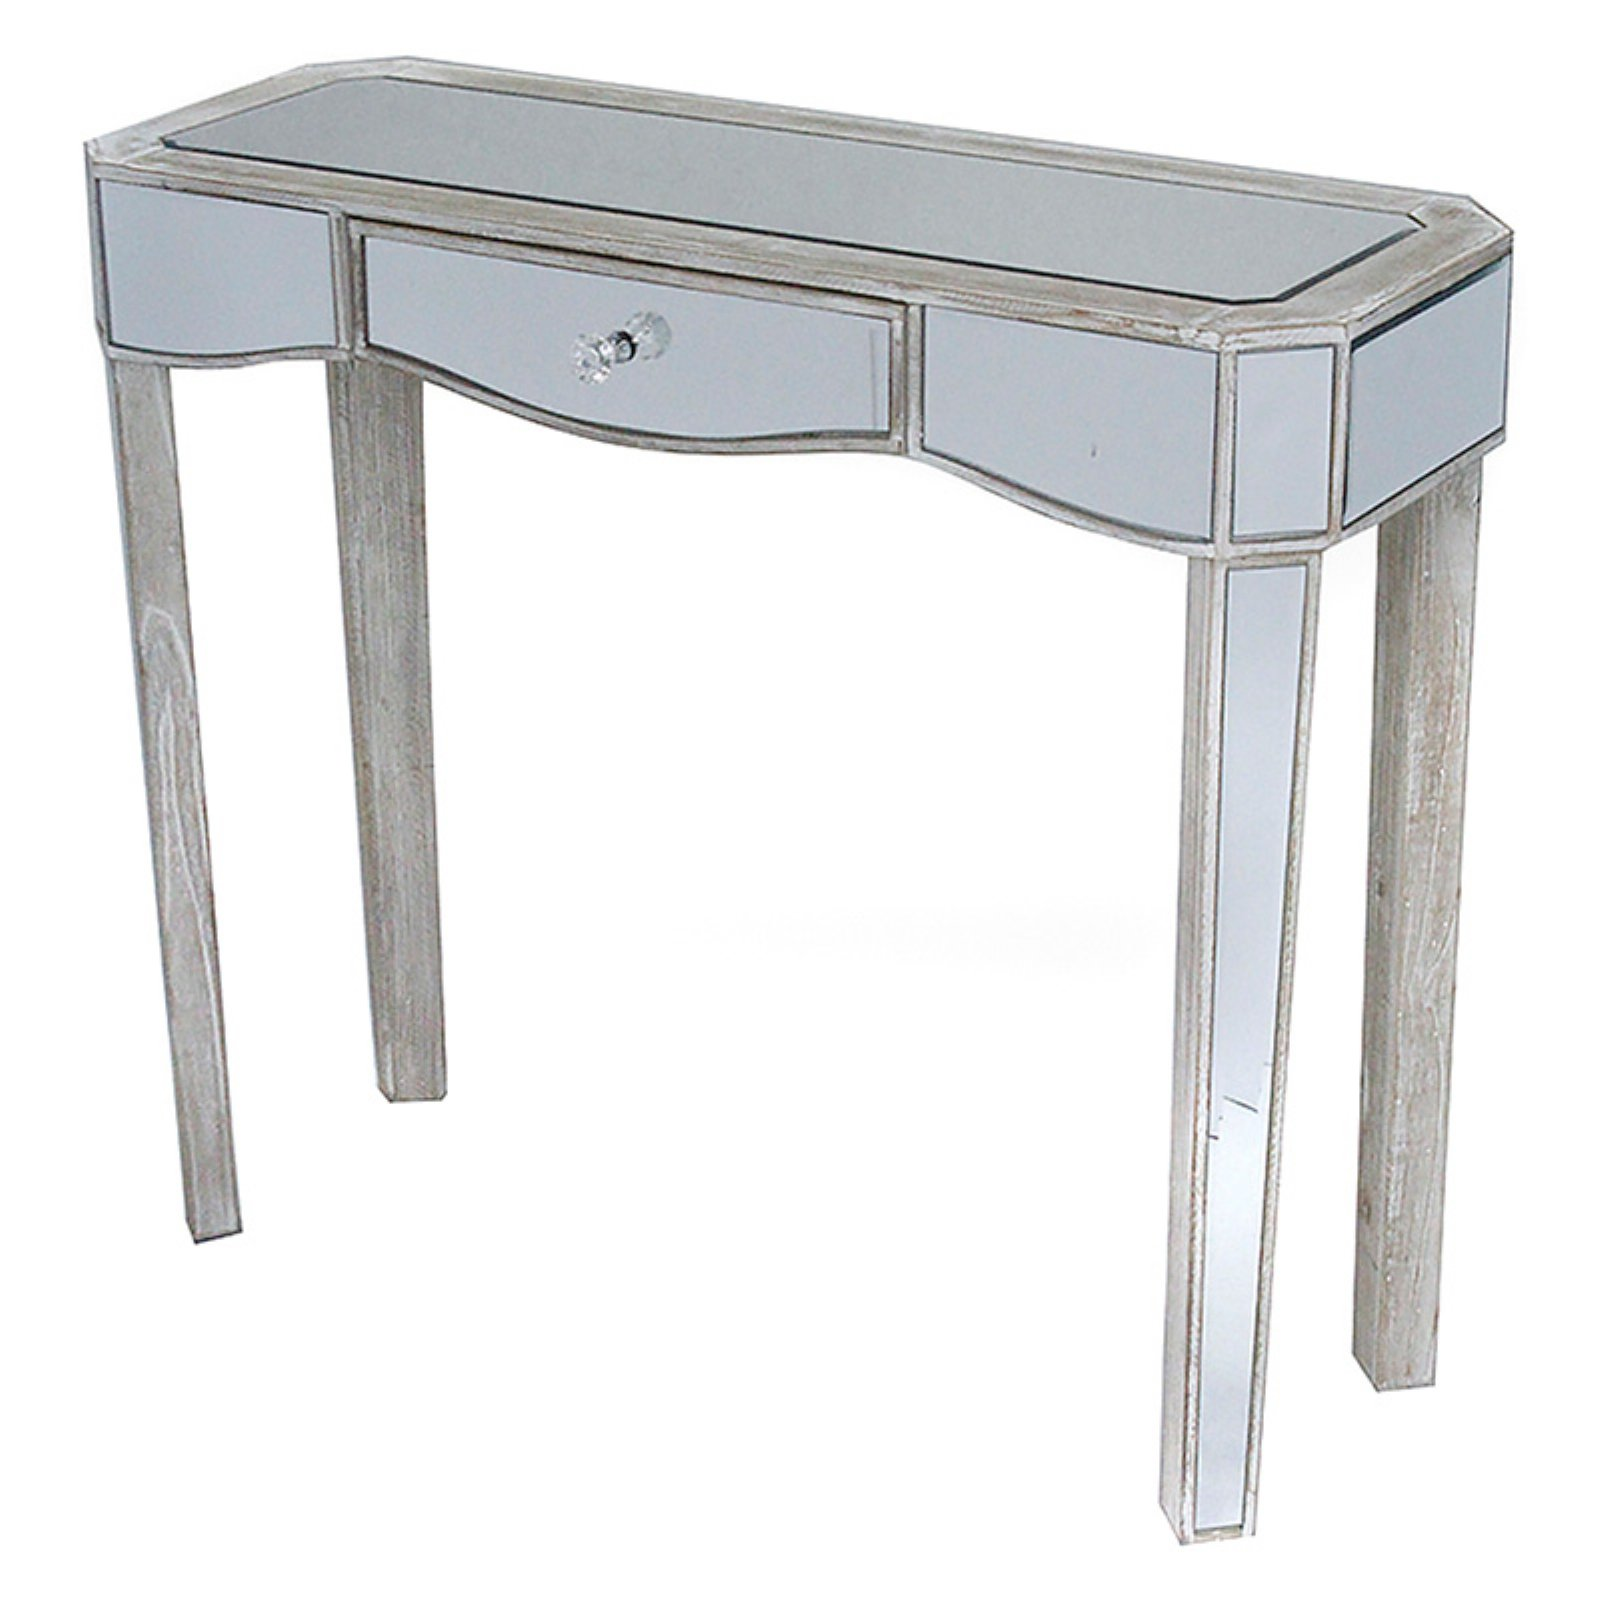 Heather Ann Creations Elizabeth Writing Desk with Mirror Accents